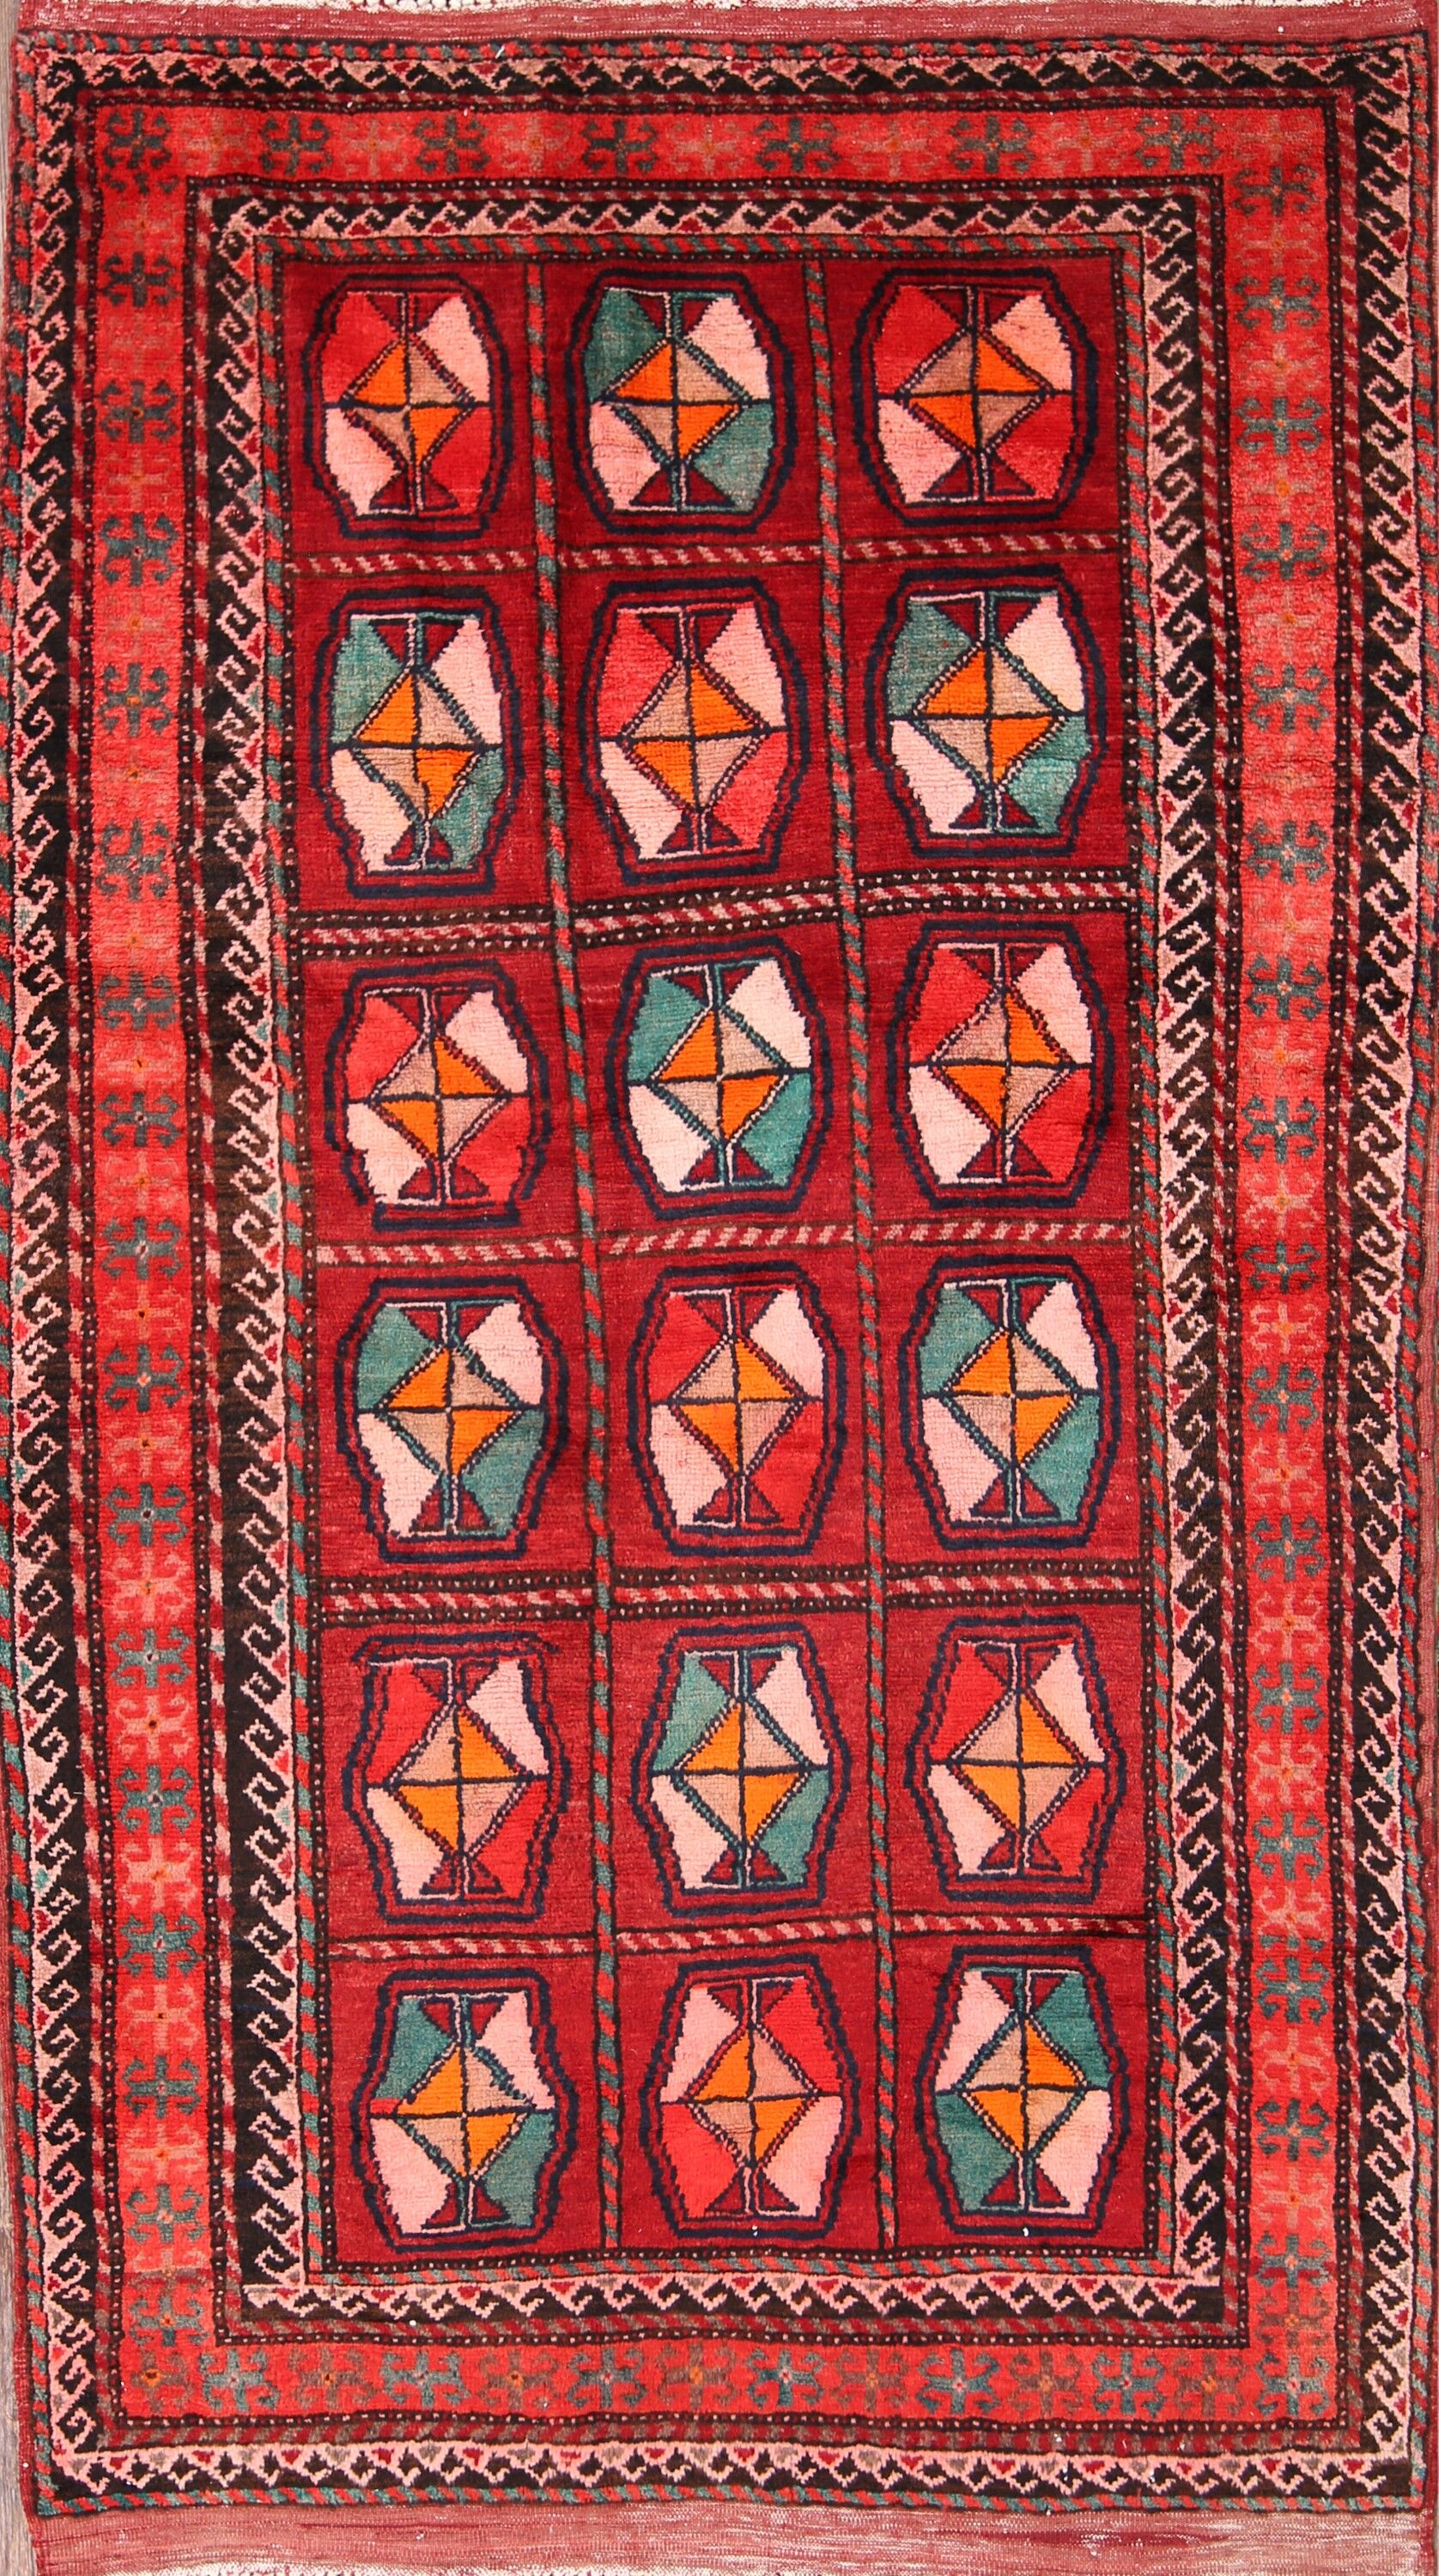 One-of-a-Kind Traditional Balouch Persian Hand-Knotted 4'2